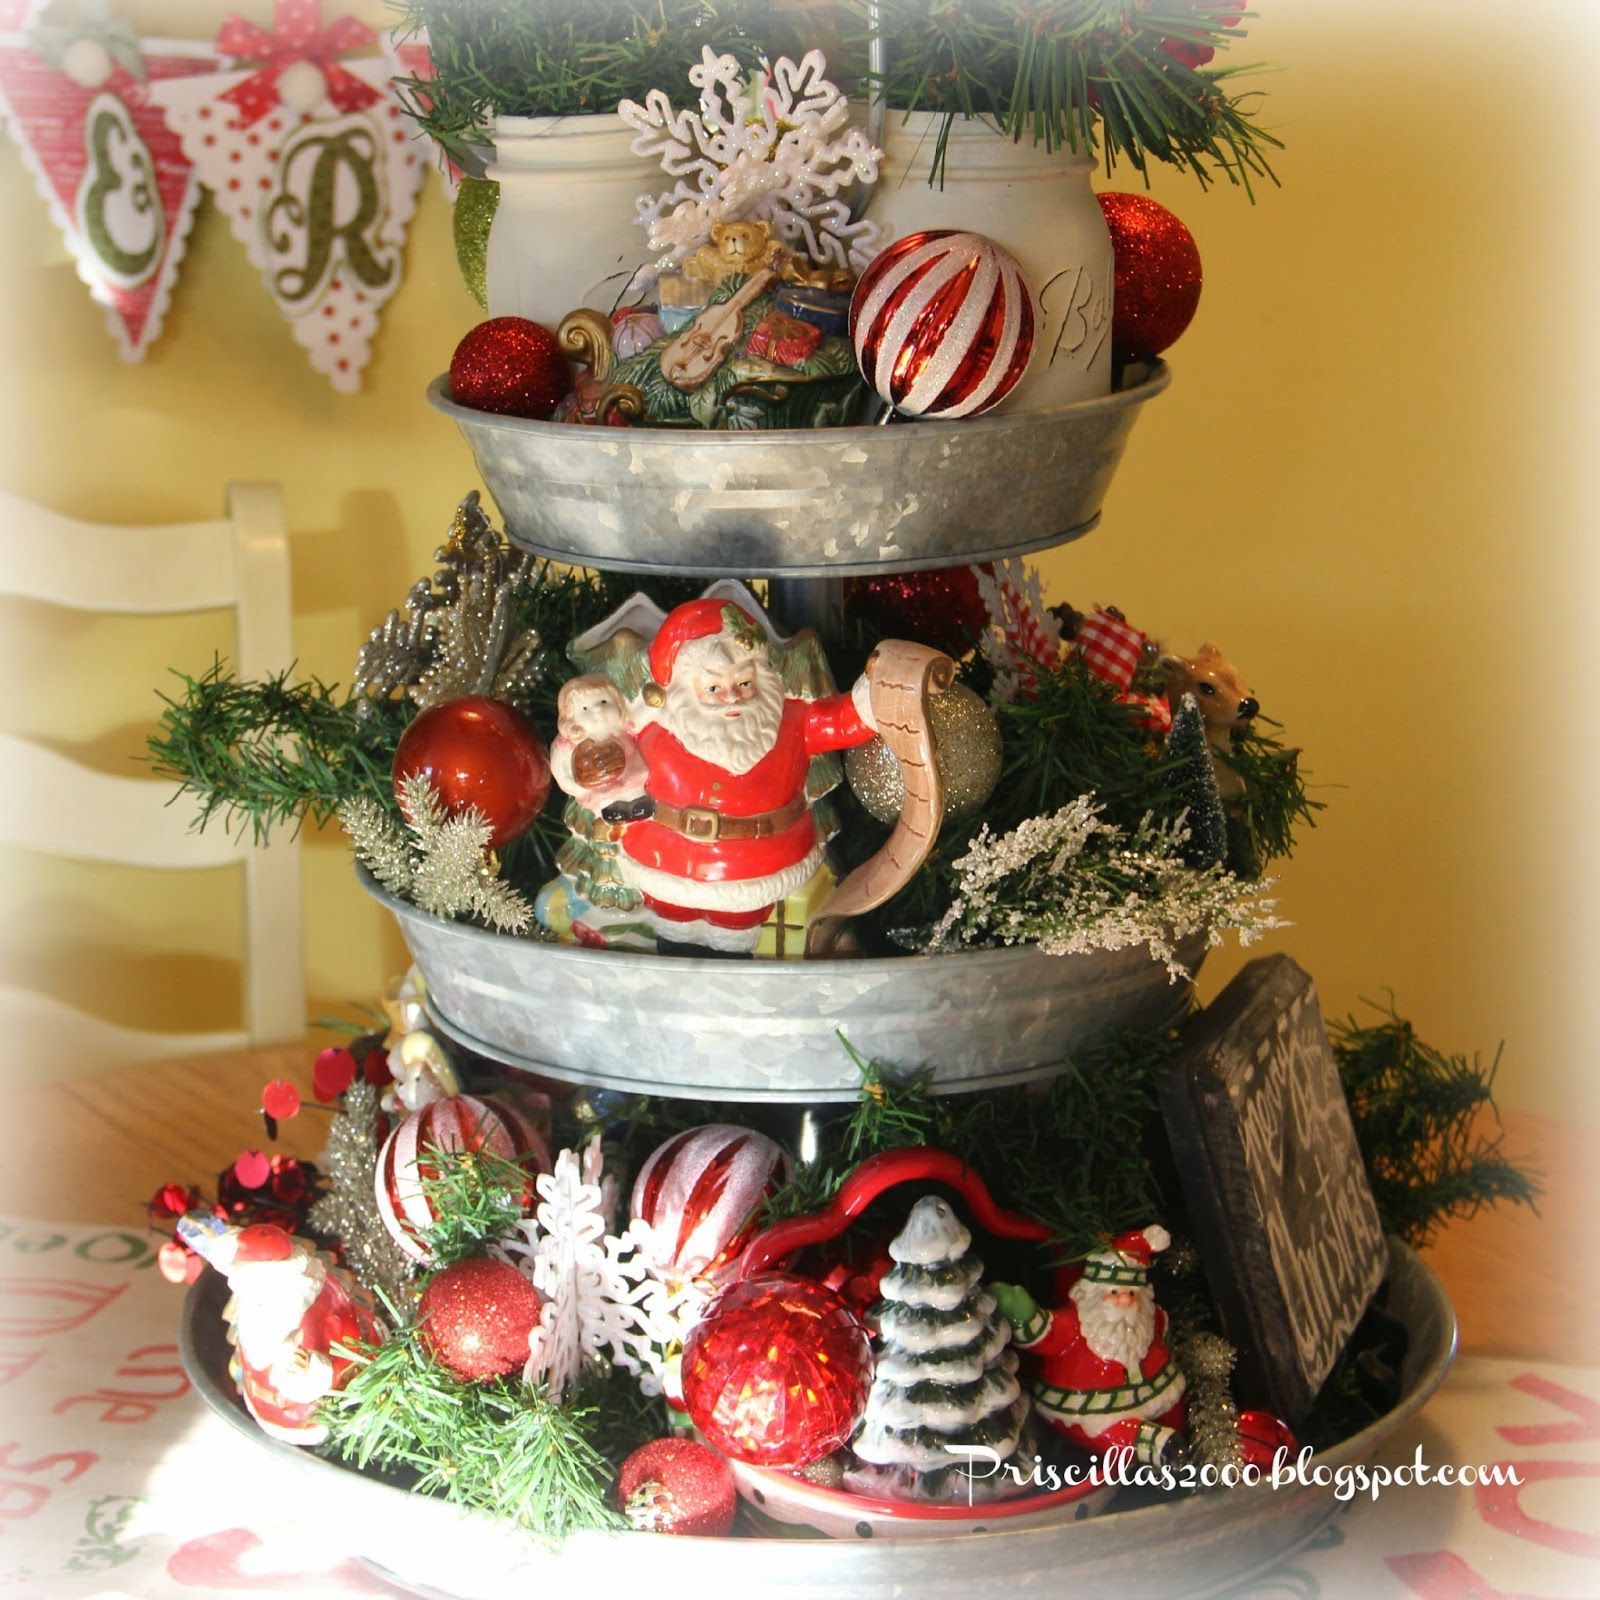 Kitchen Table Decorations For Christmas: A Year Of The Galvanized Tiered Tray